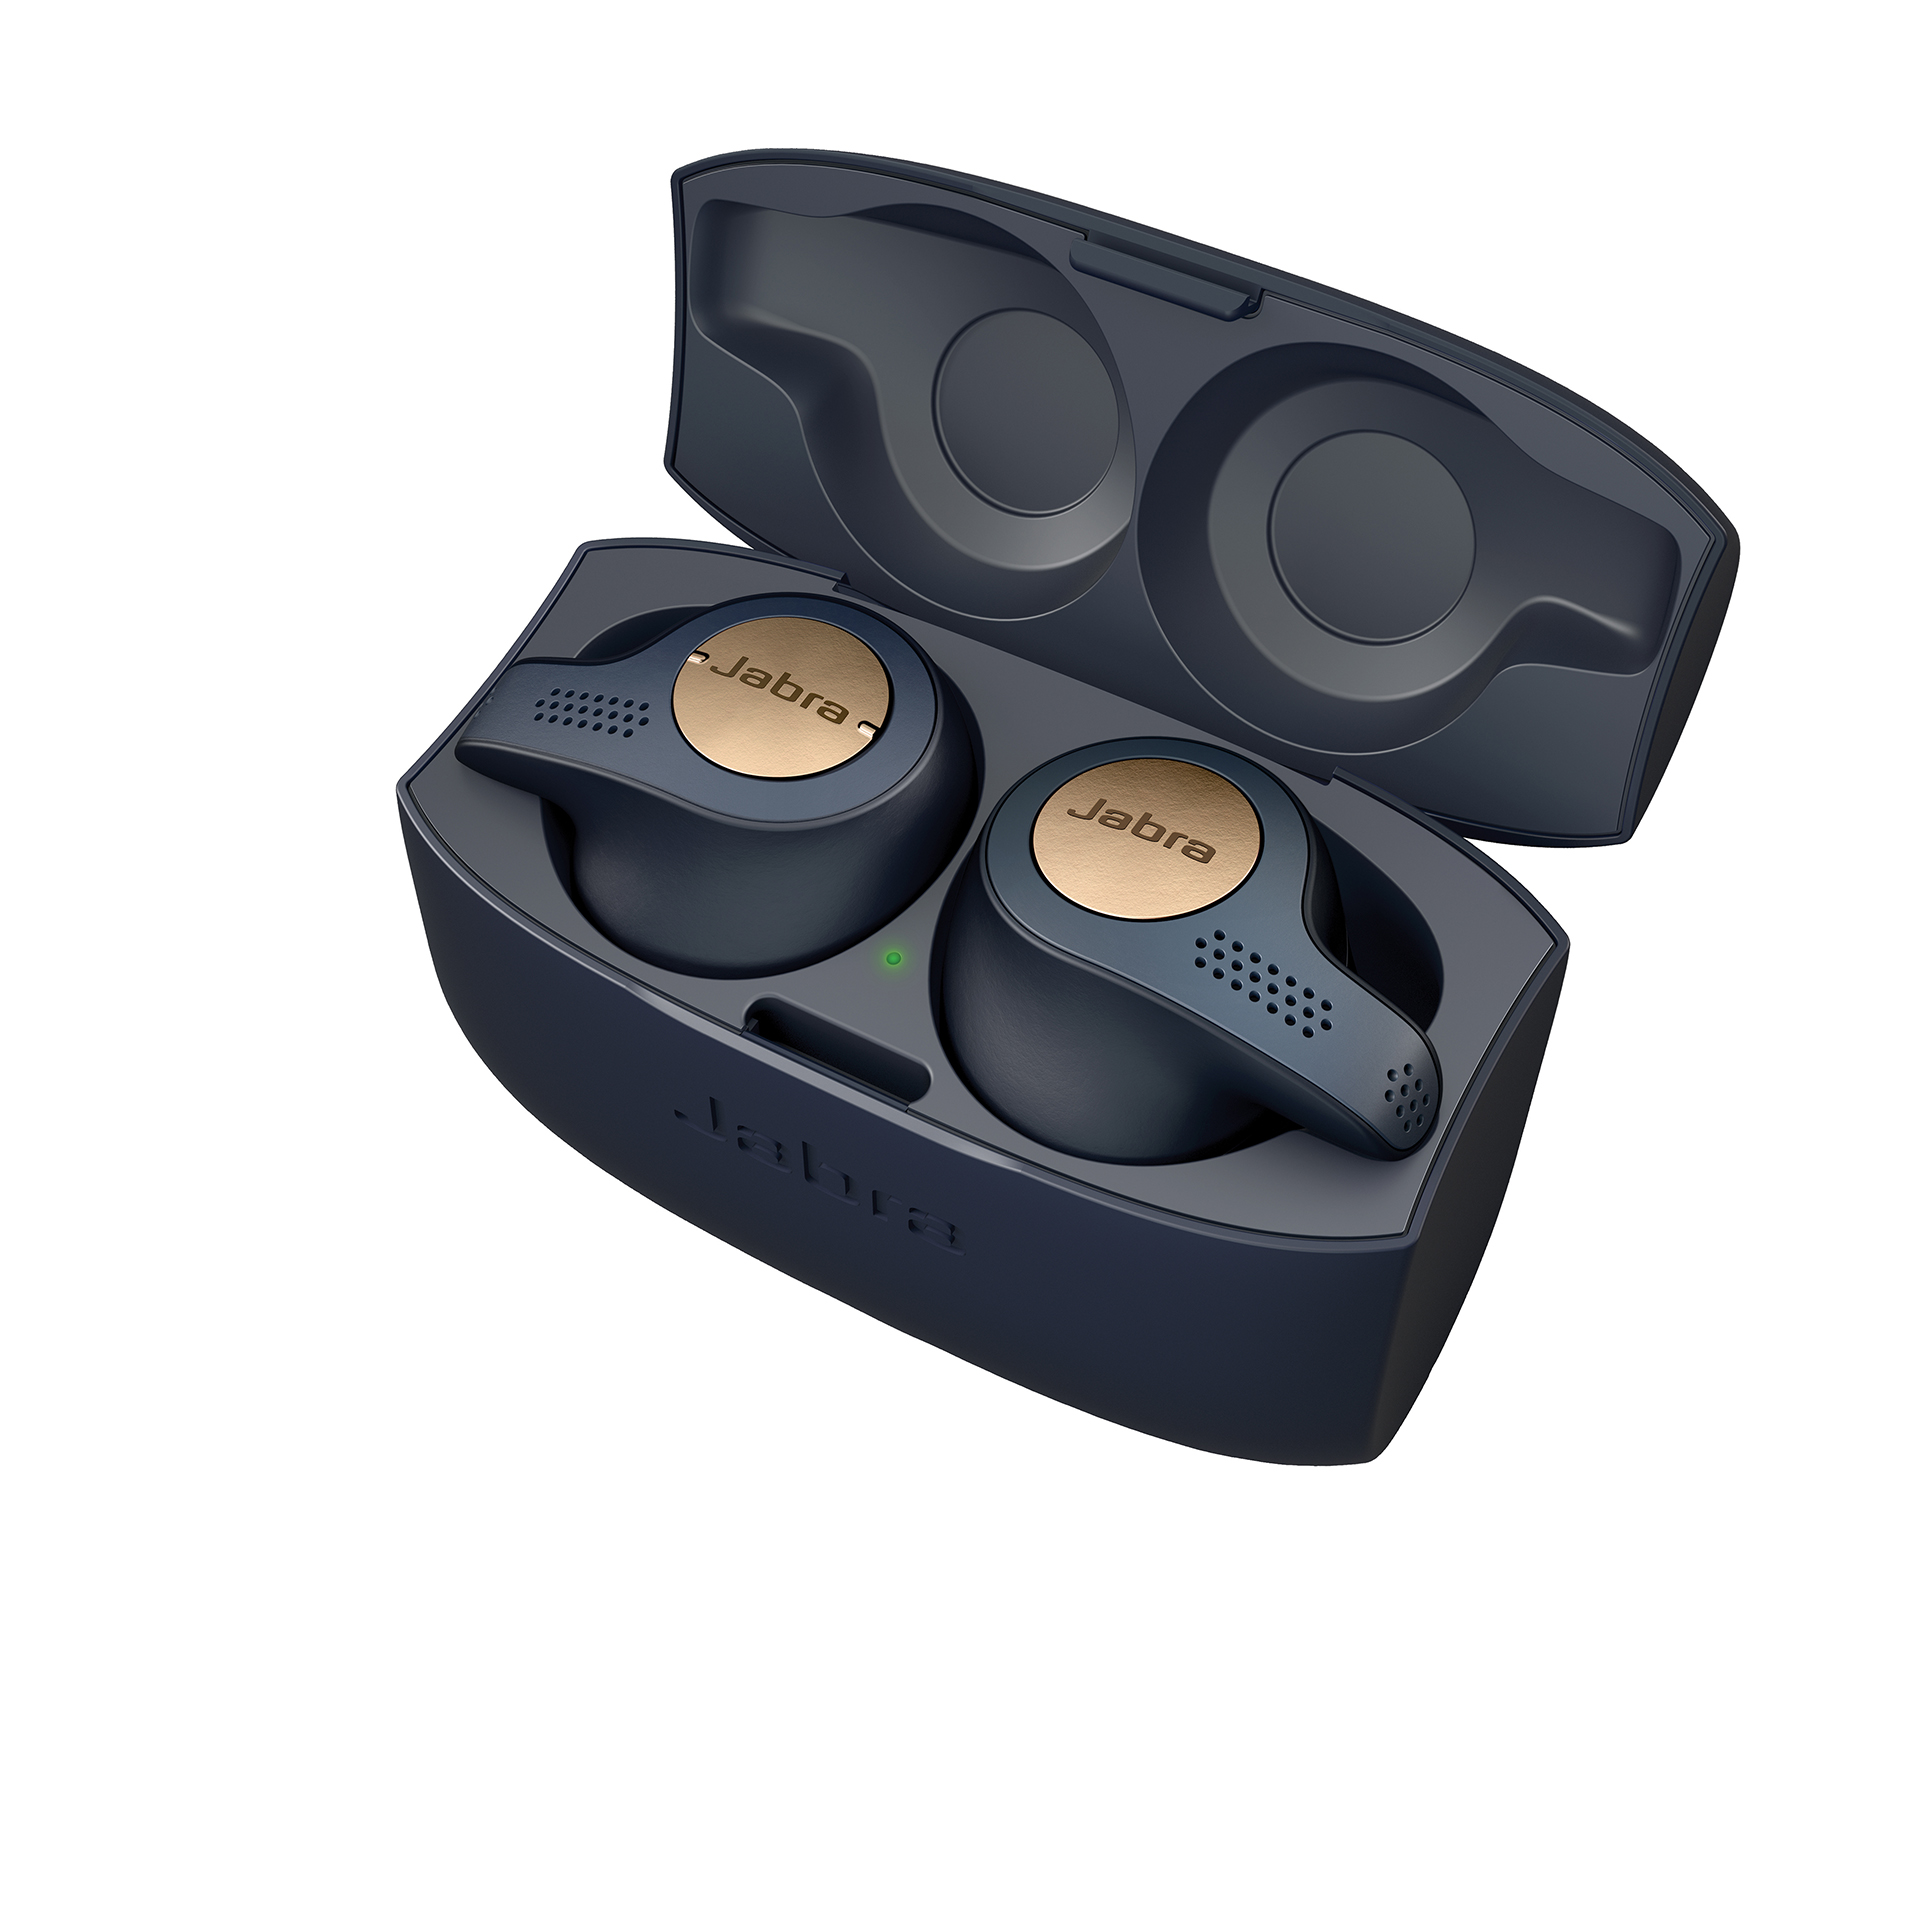 Jabra-Elite-Active-65t-True-Wireless-Earbuds-Manufacturer-Refurbished thumbnail 17